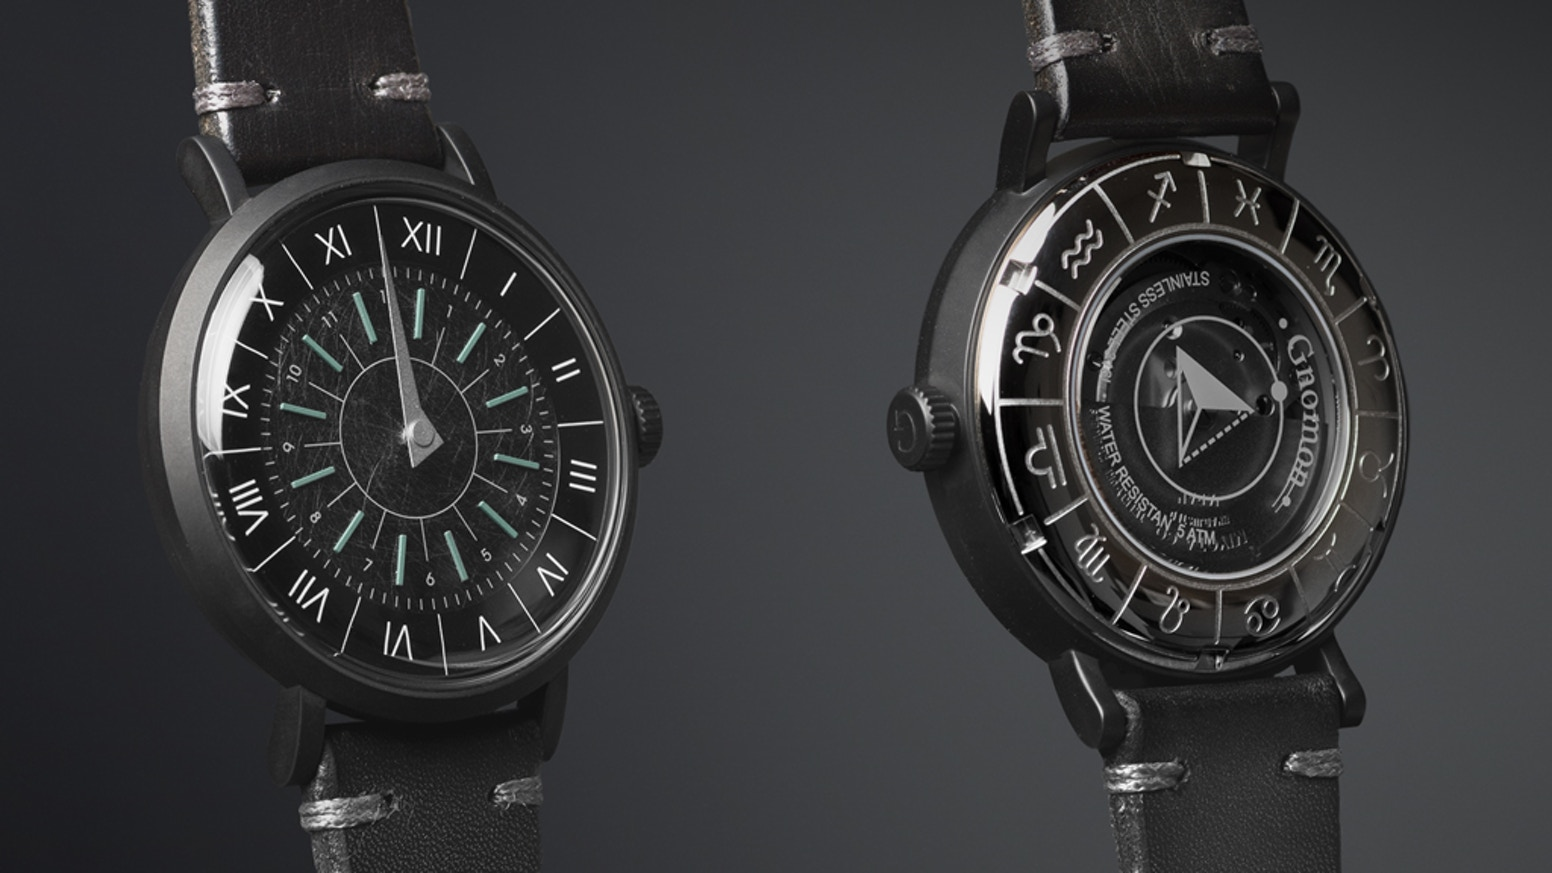 Check the website to see our second collection of the sundial-inspred wristwatch!